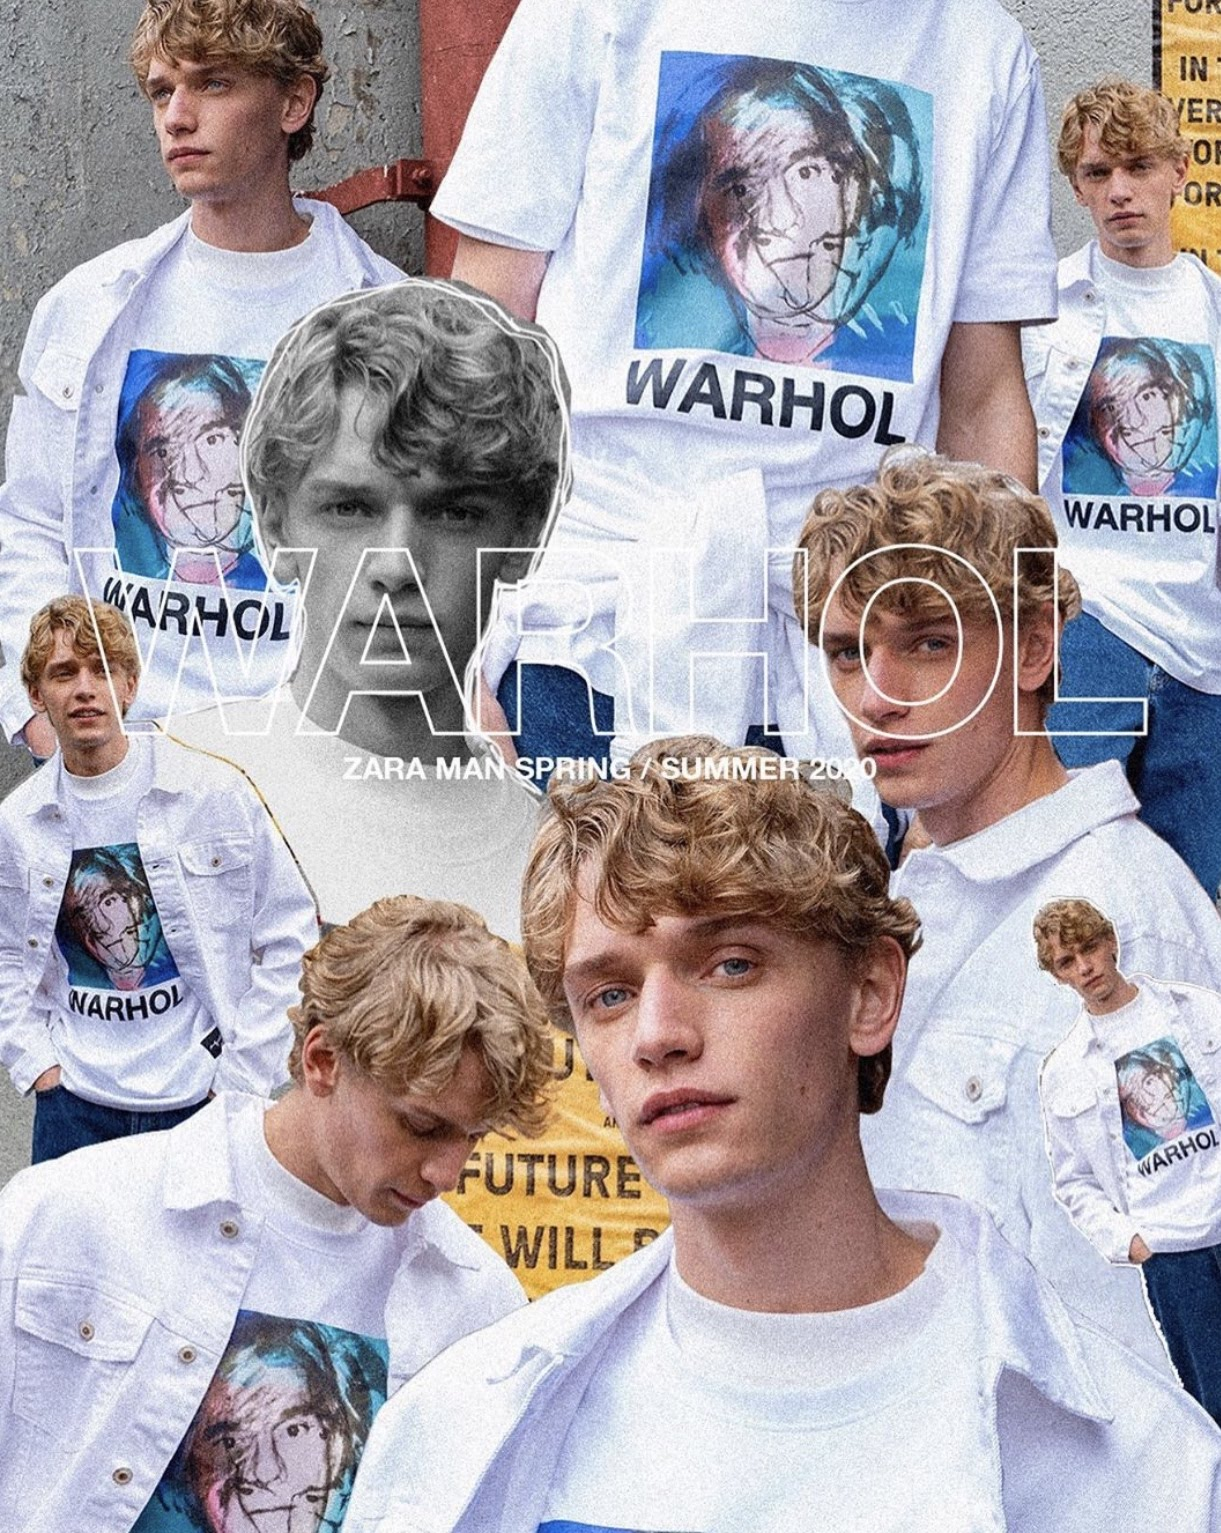 Zara Man x Andy Warhol Foundation